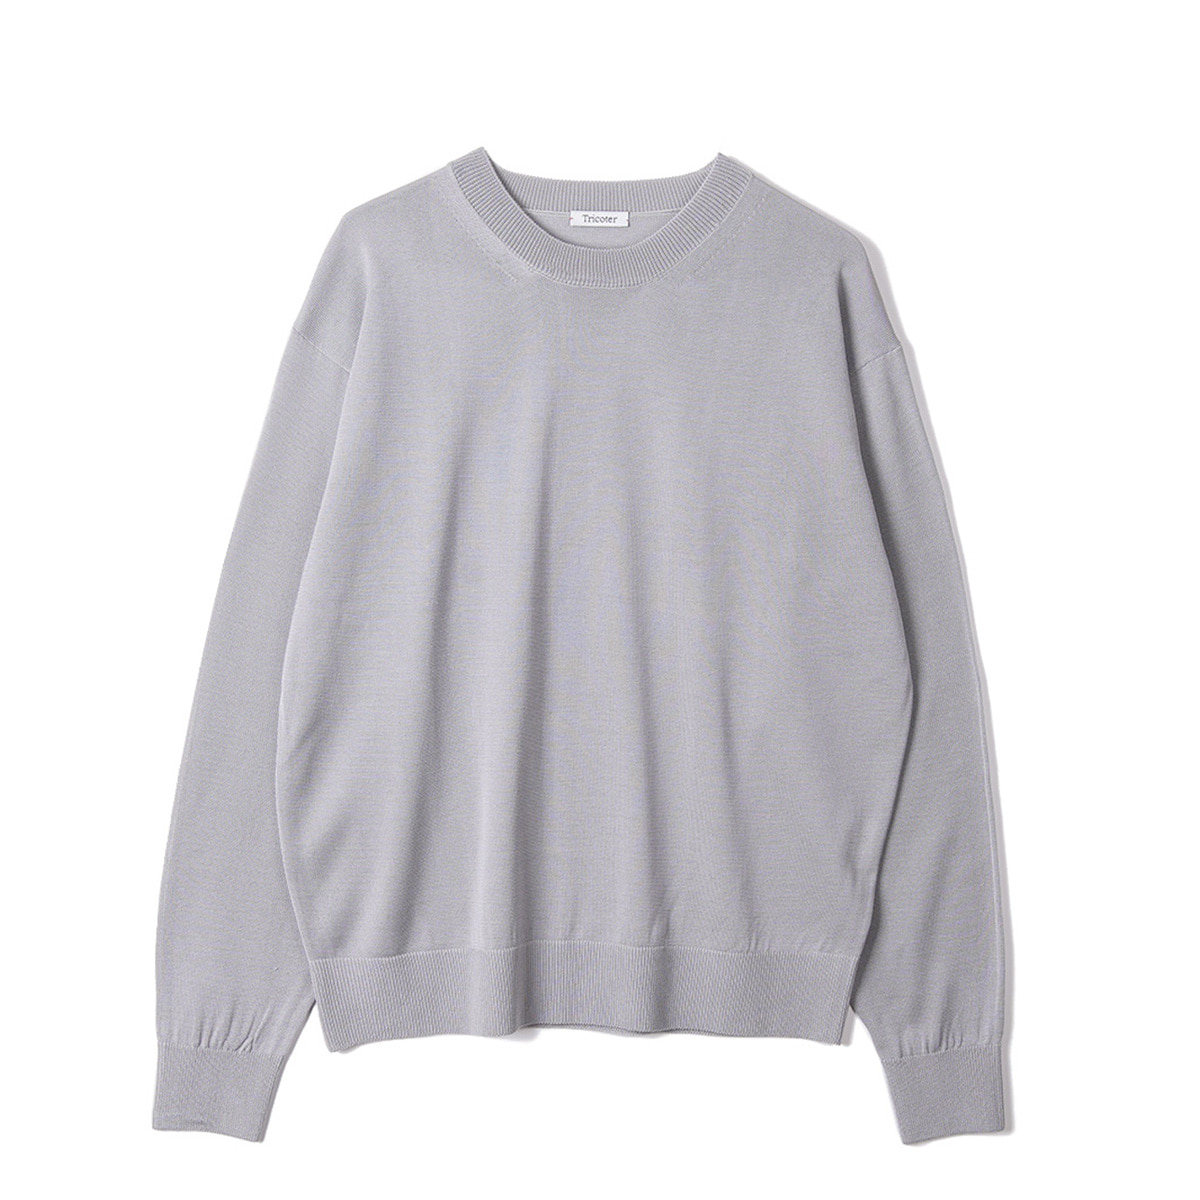 [TRICOTER] SUMMER YARN CREW NECK PULLOVER 'GREY'